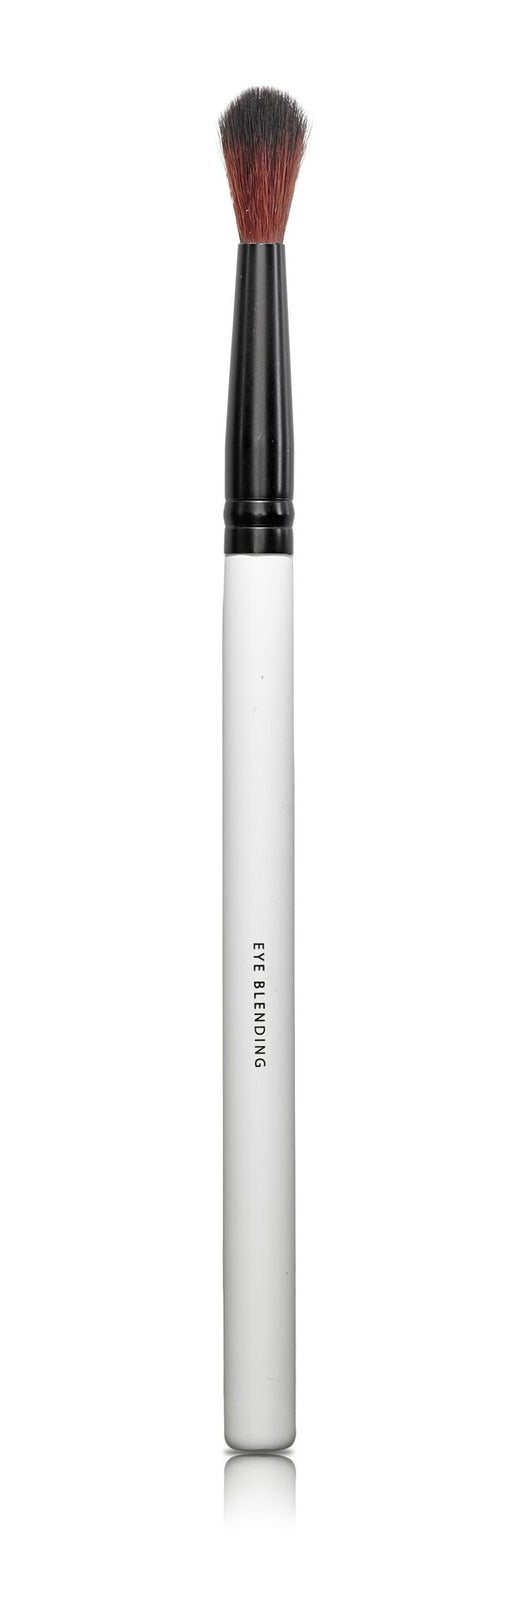 Lily Lolo - Eye Blending Brush